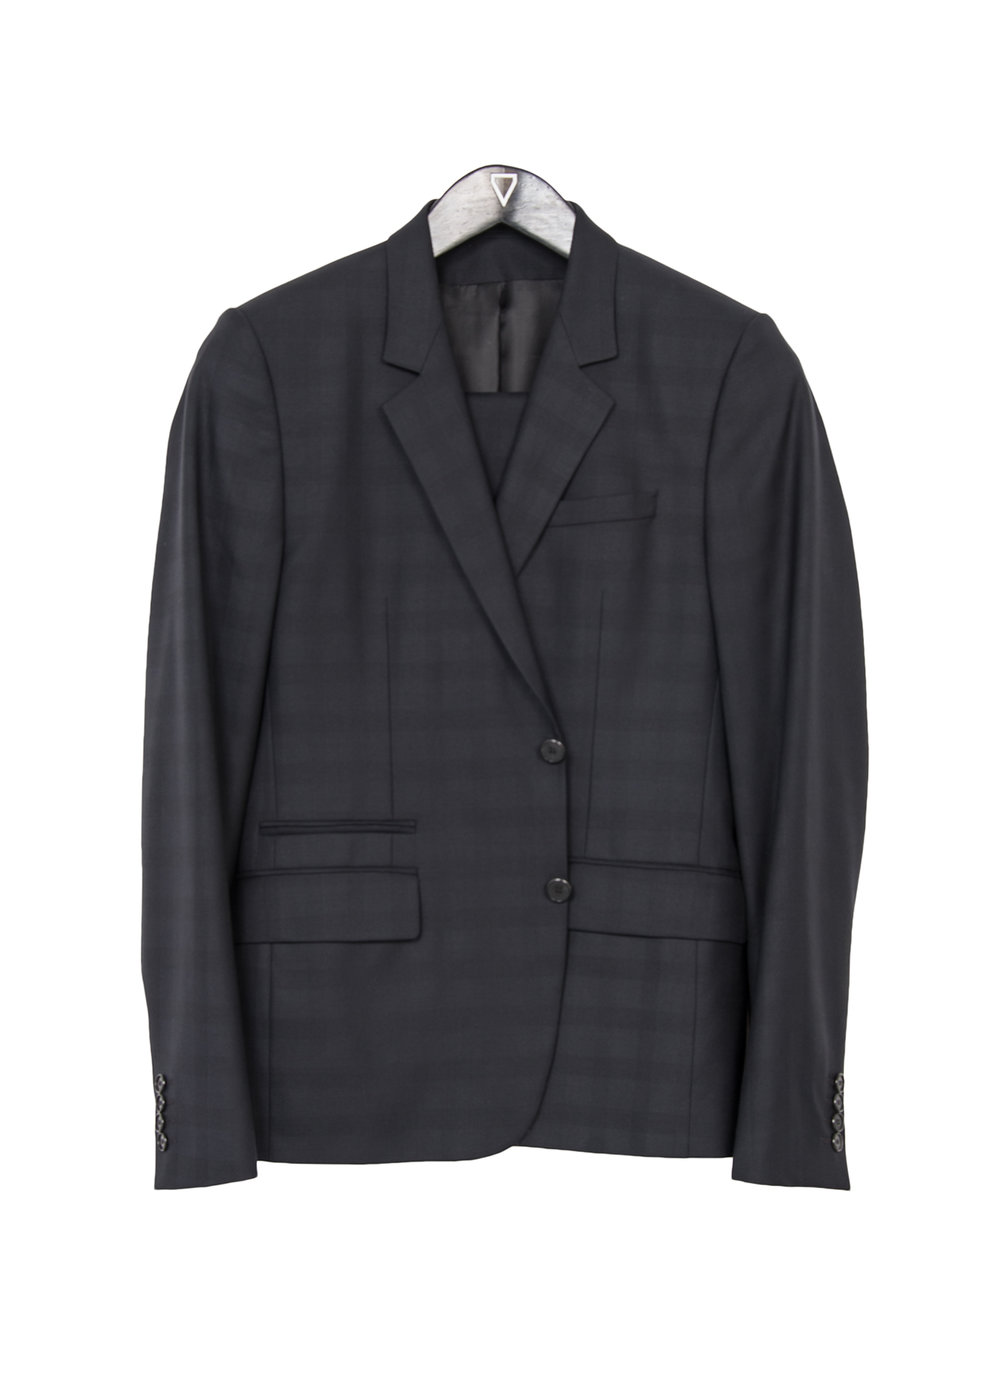 "GIVENCHY SUIT ""GIVENCHY-SUIT01"""